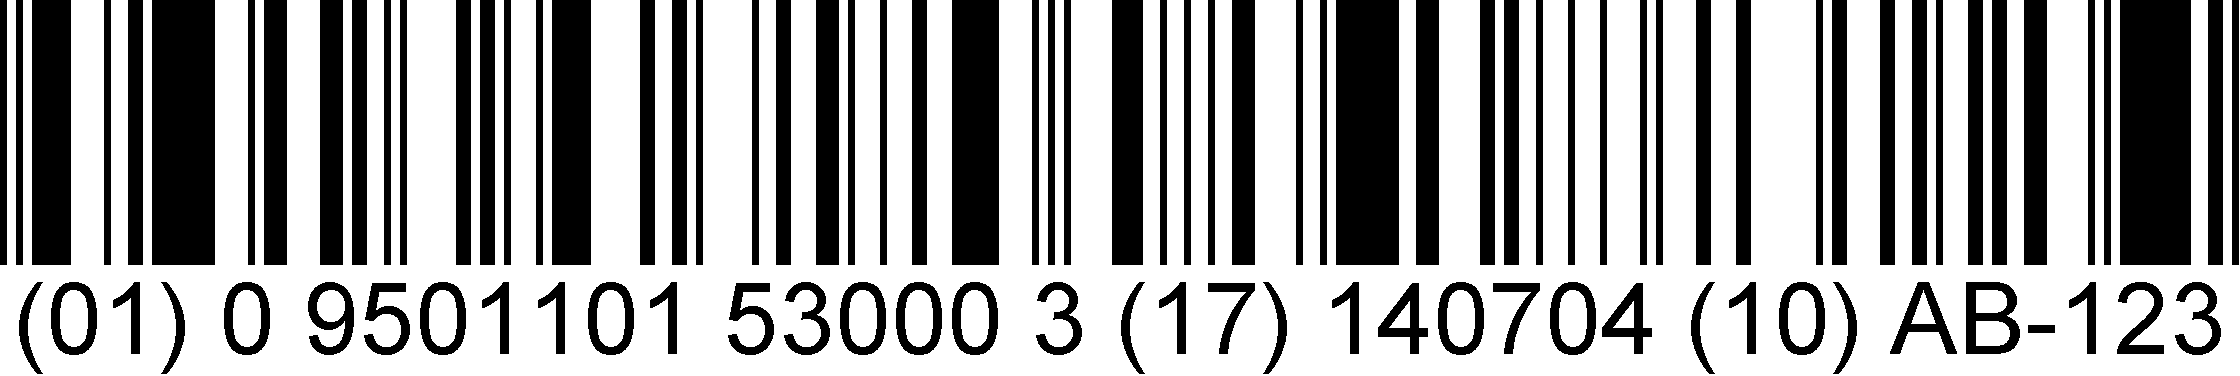 DataBar Expanded barcode